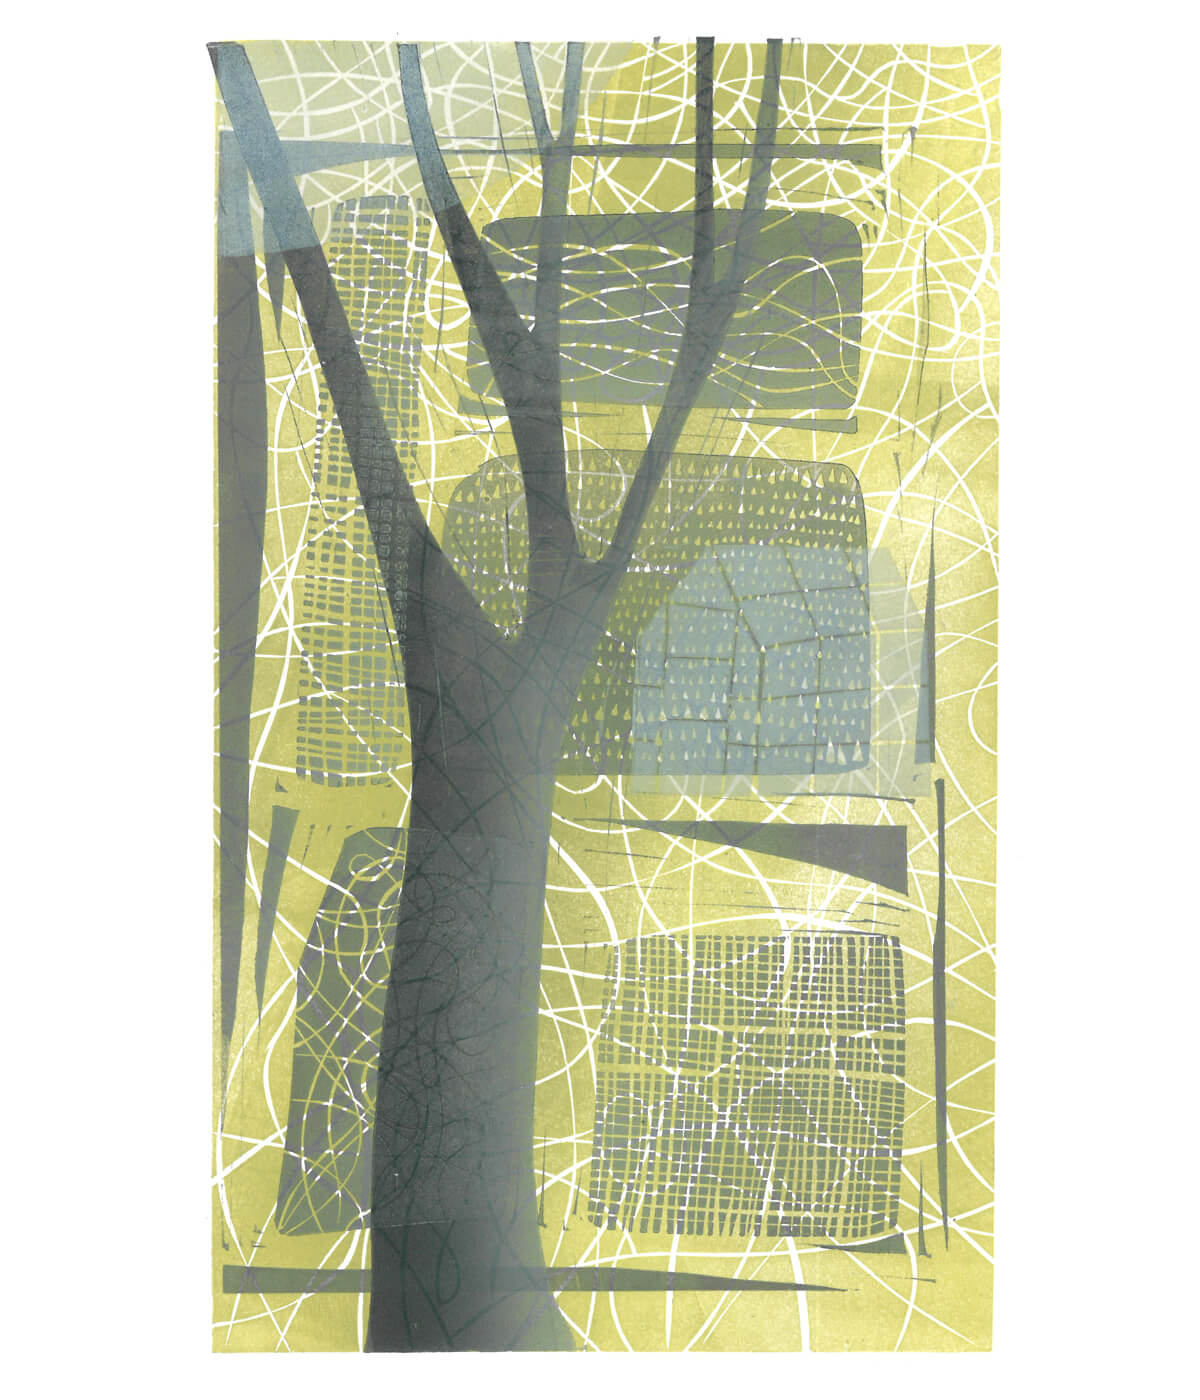 Shortest Day II, a linocut print by Sarah Kirby